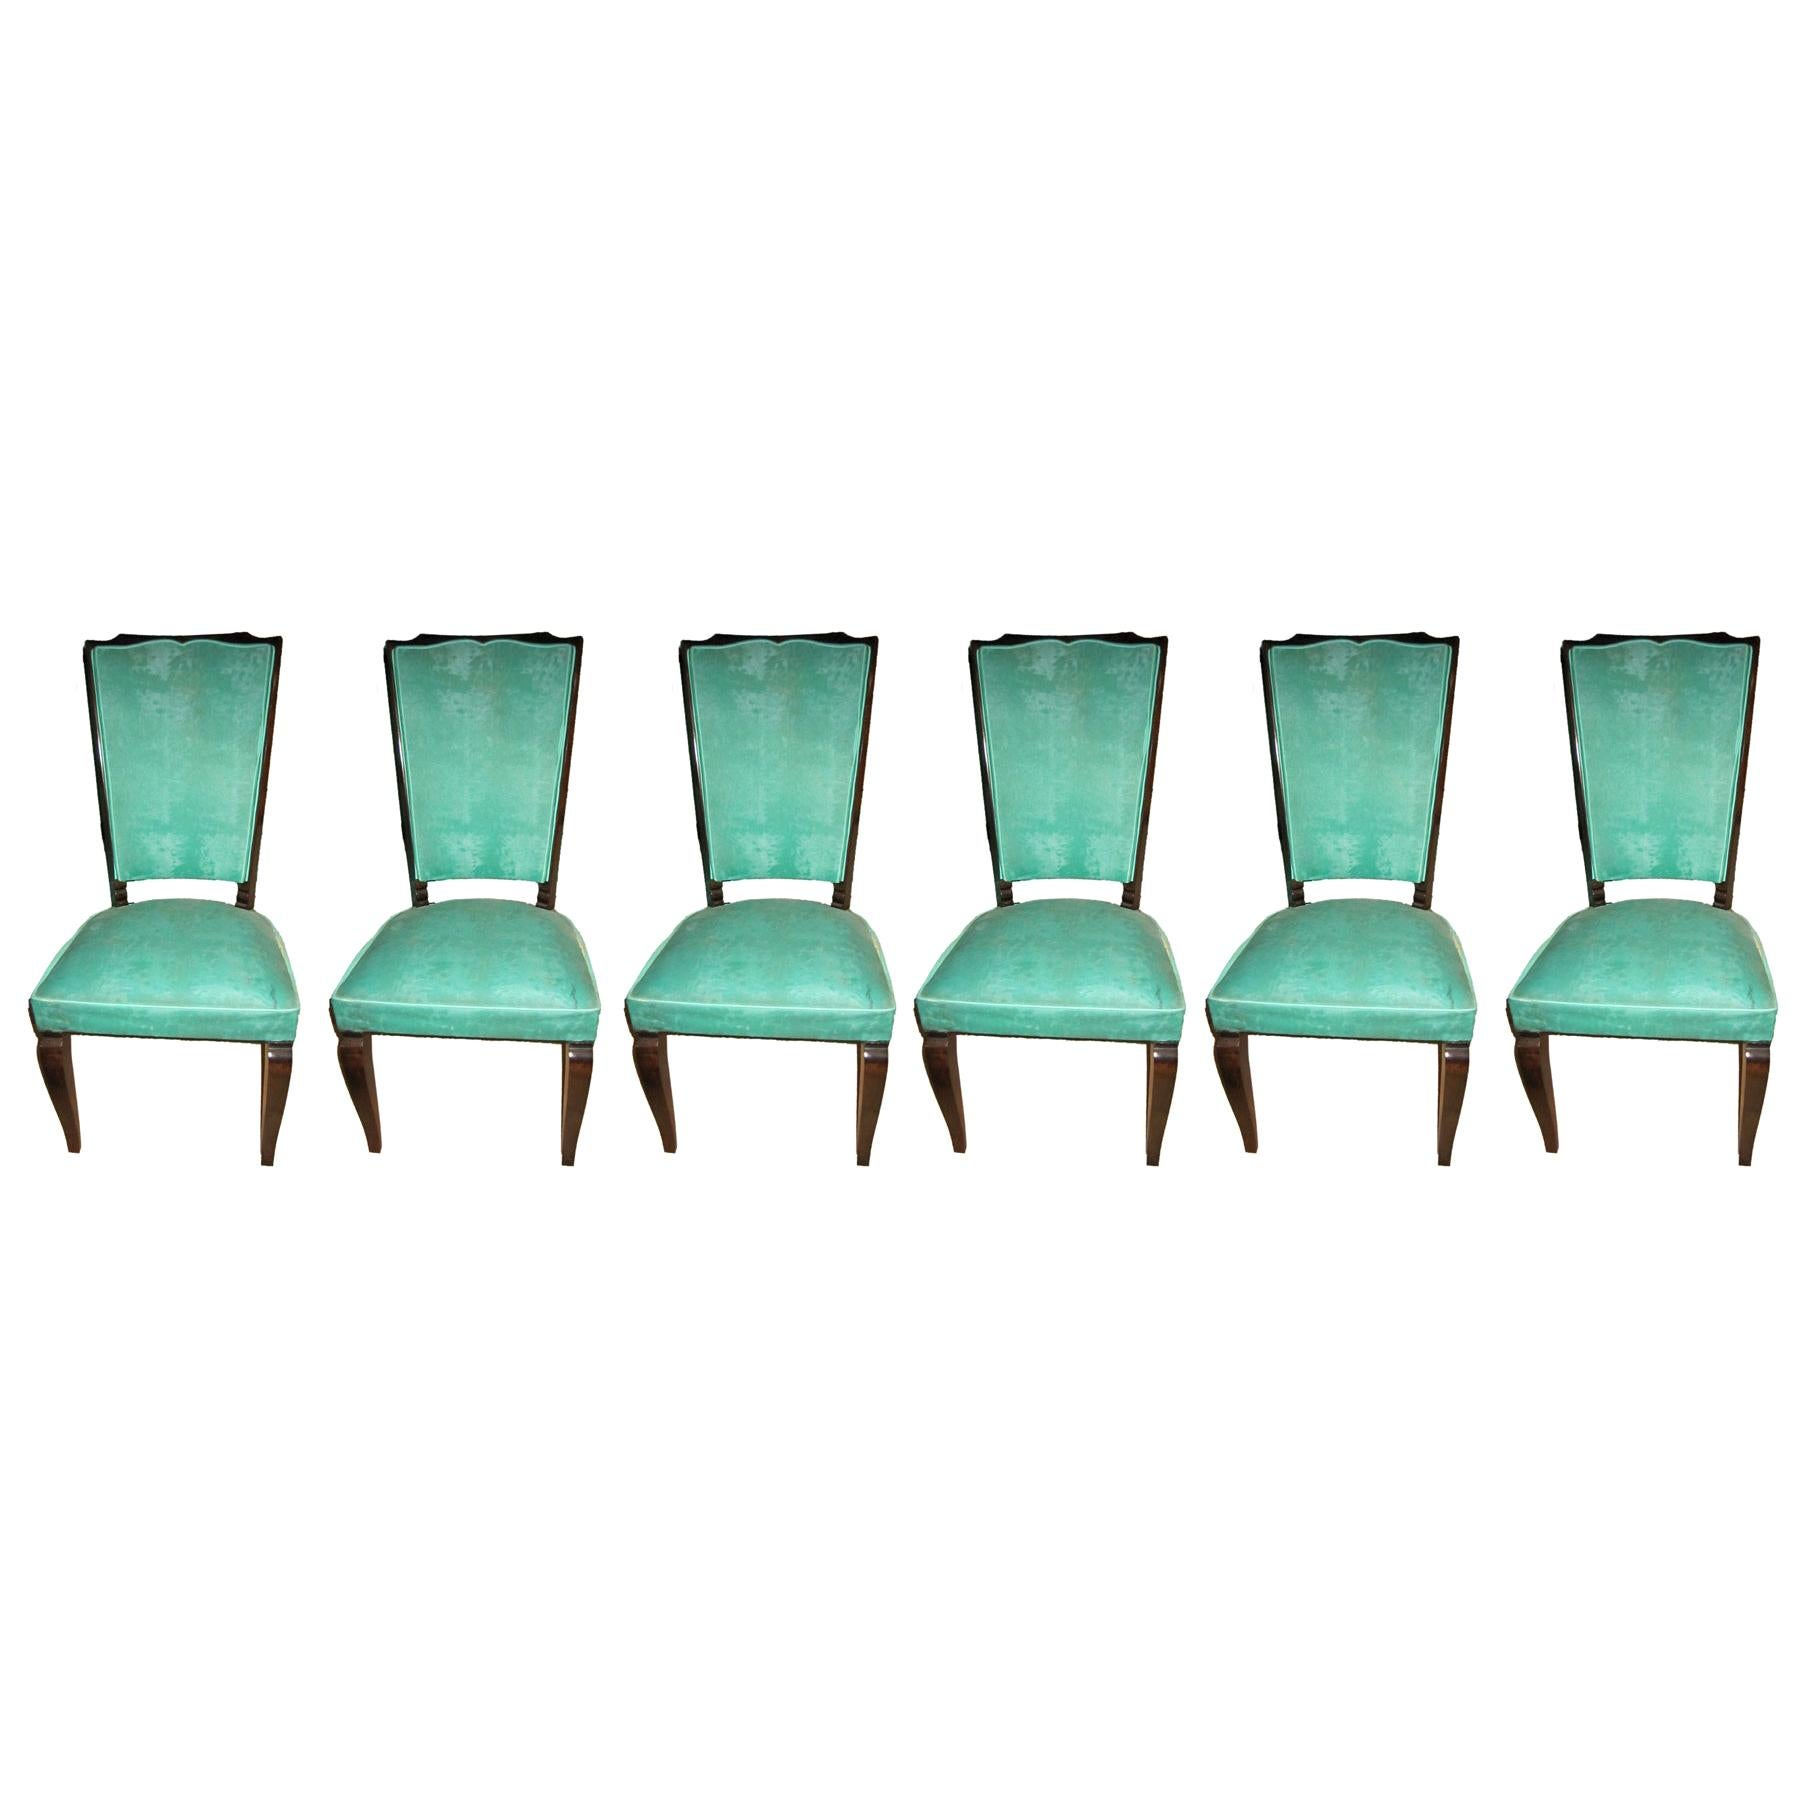 Set of Six Original French 1940s Refinished Tall Back Dining Chairs